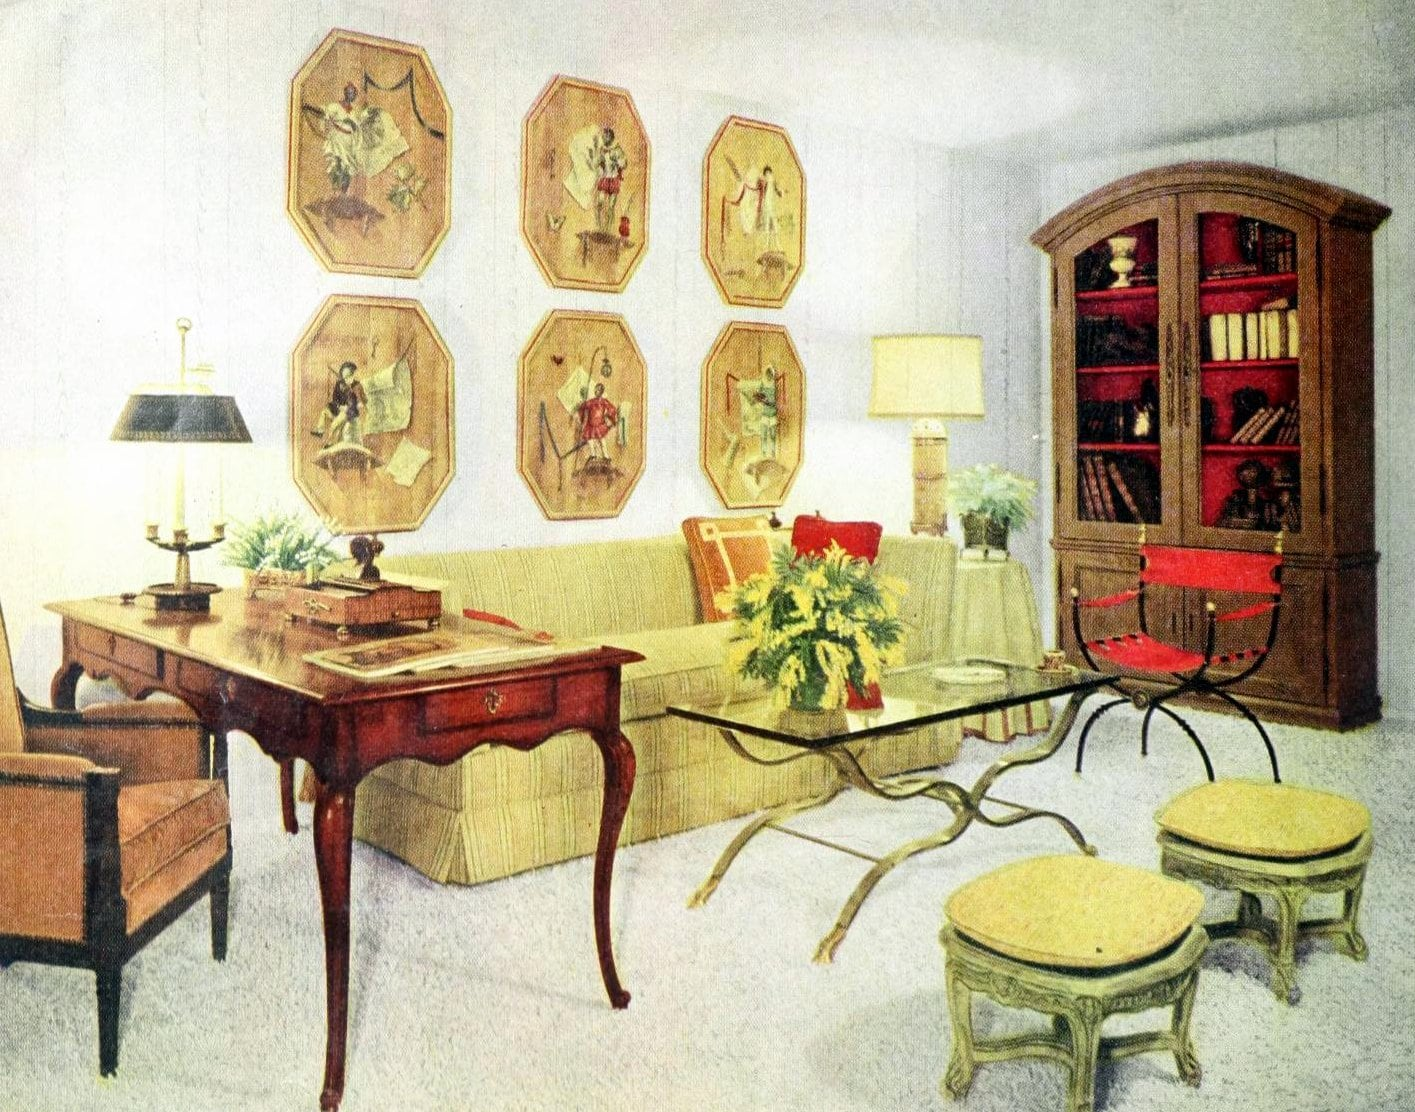 Vintage 1960s living room decor with high-end furnishings